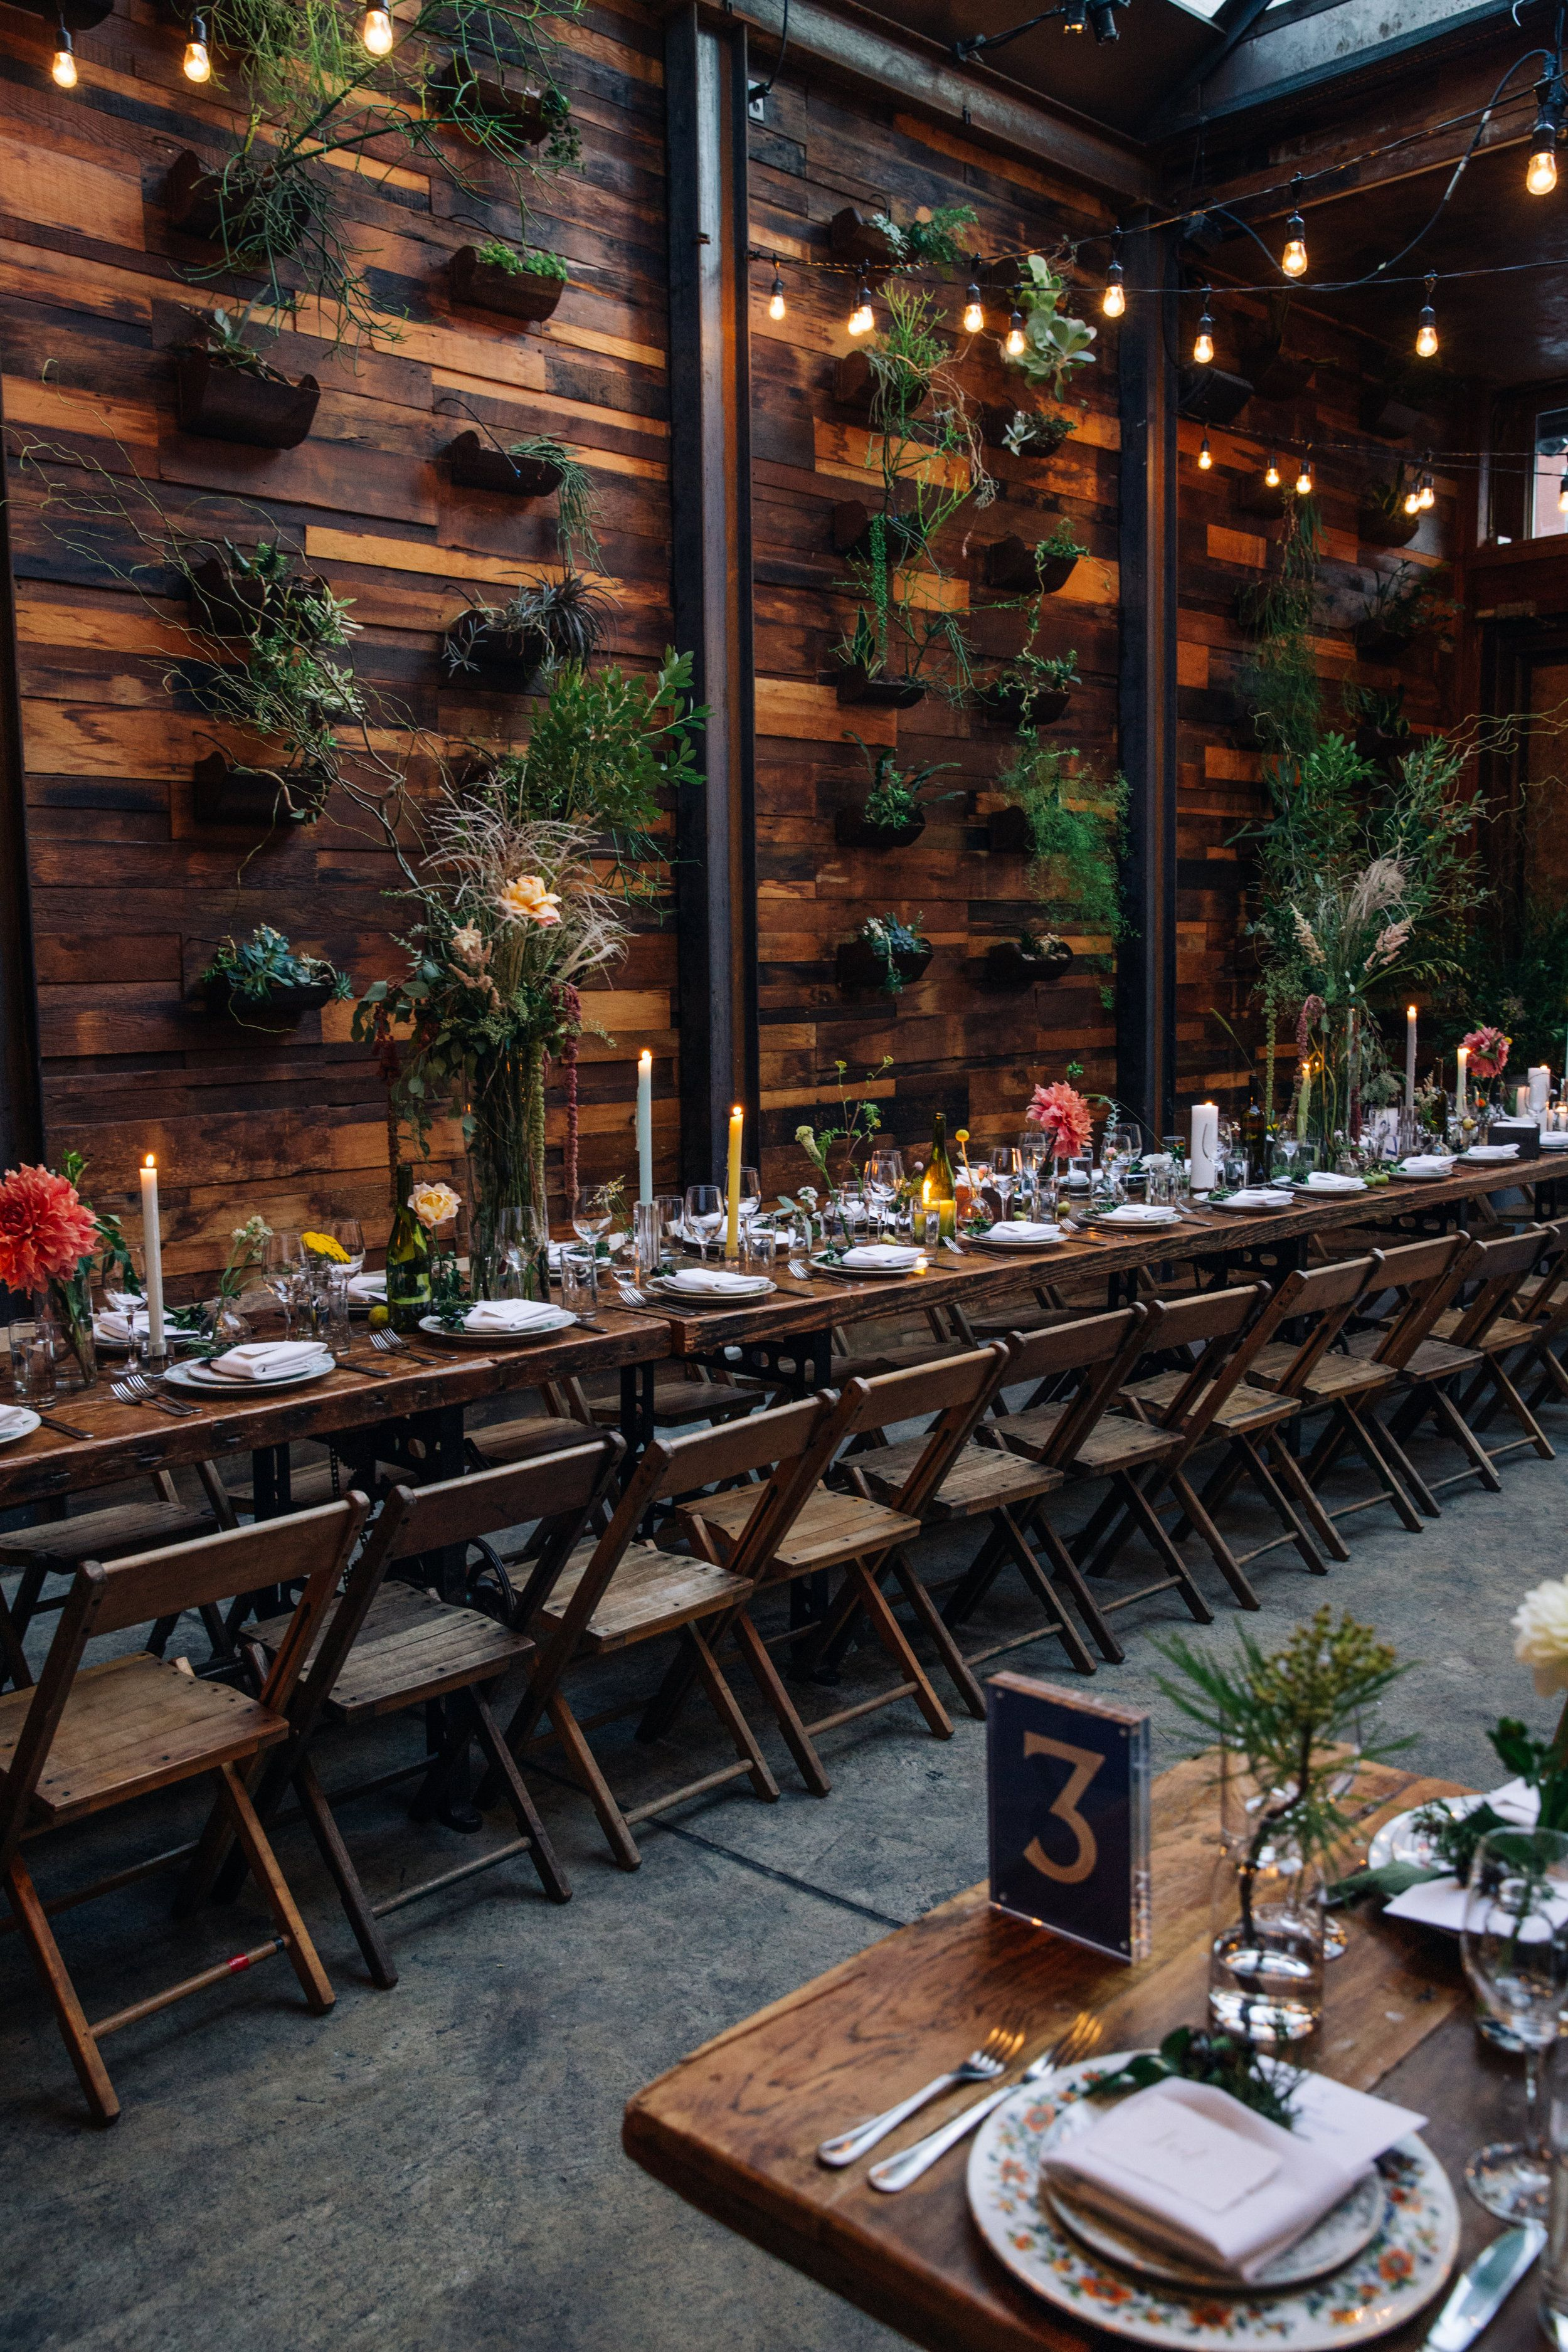 Brooklyn Winery S Atrium Is Set Ready For Another Special Wedding Dinner Rustic Restaurant Interior Cafe Interior Design Modern Restaurant Design